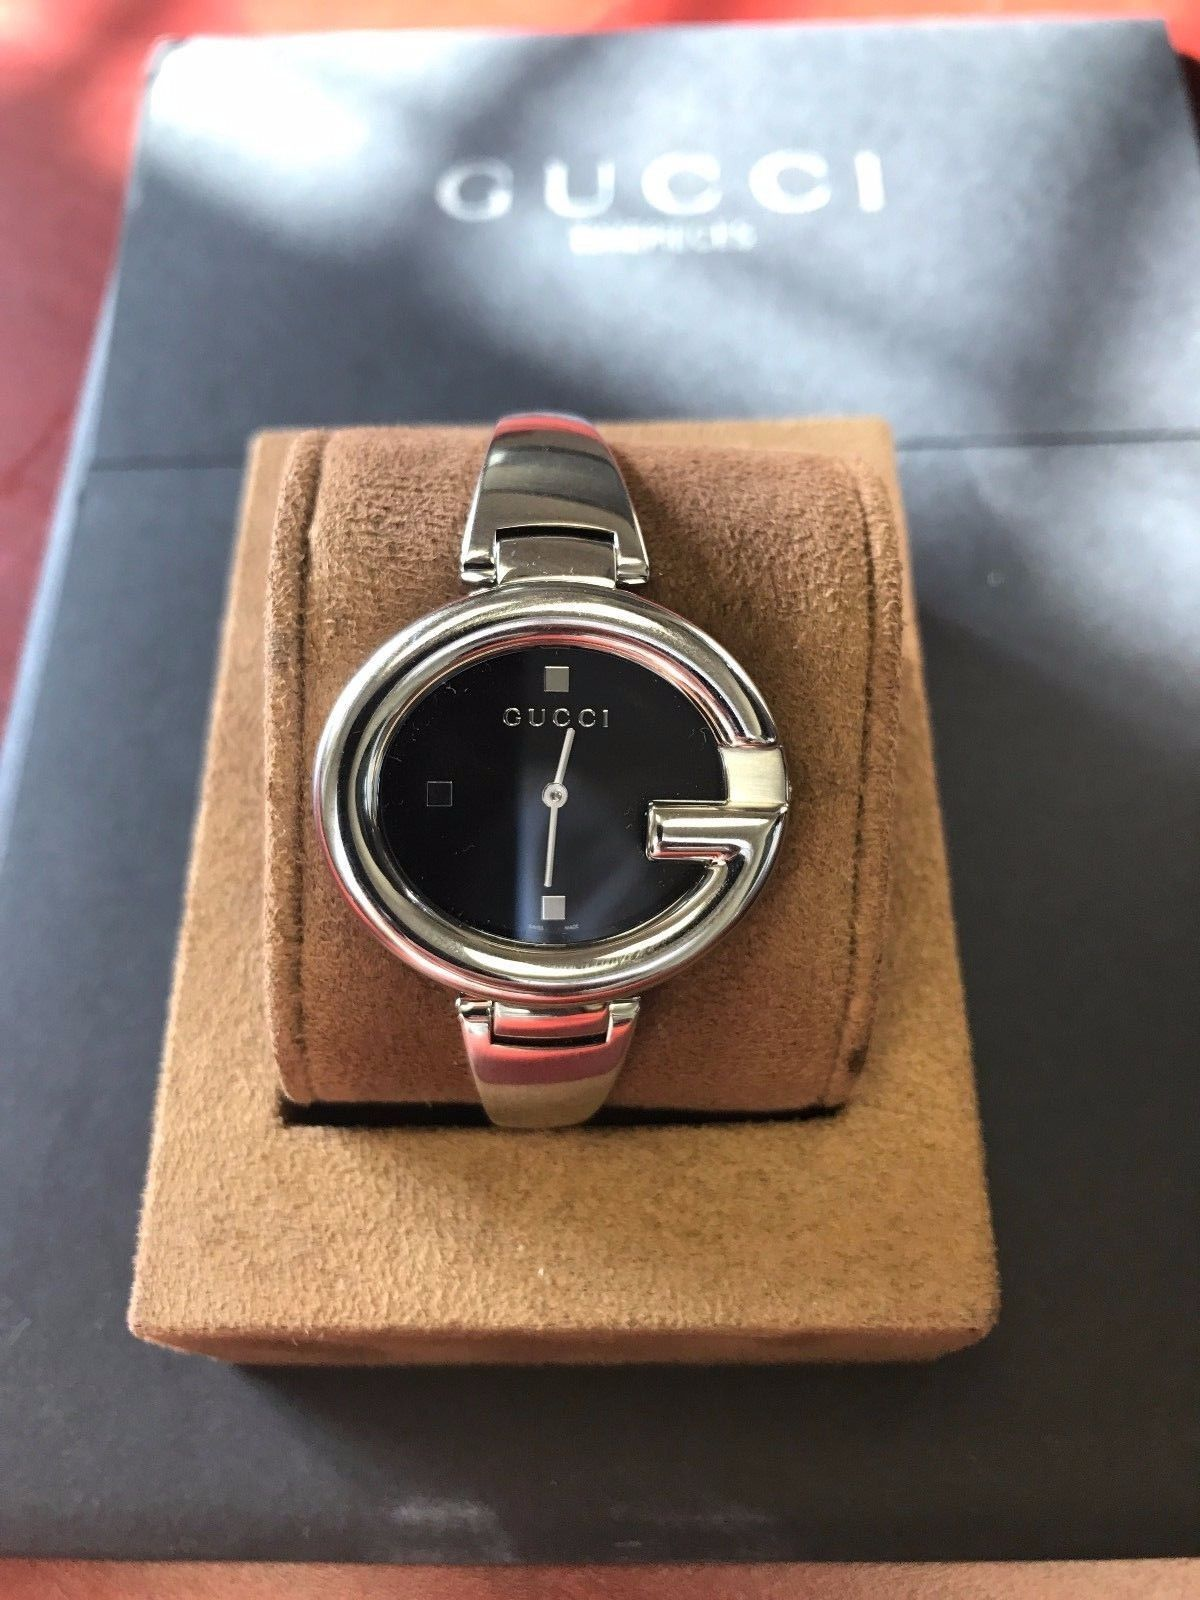 bedabfdc58f 57. 57. Previous. Gucci ya134301 Guccissima Black Dial Stainless Steel  Ladies